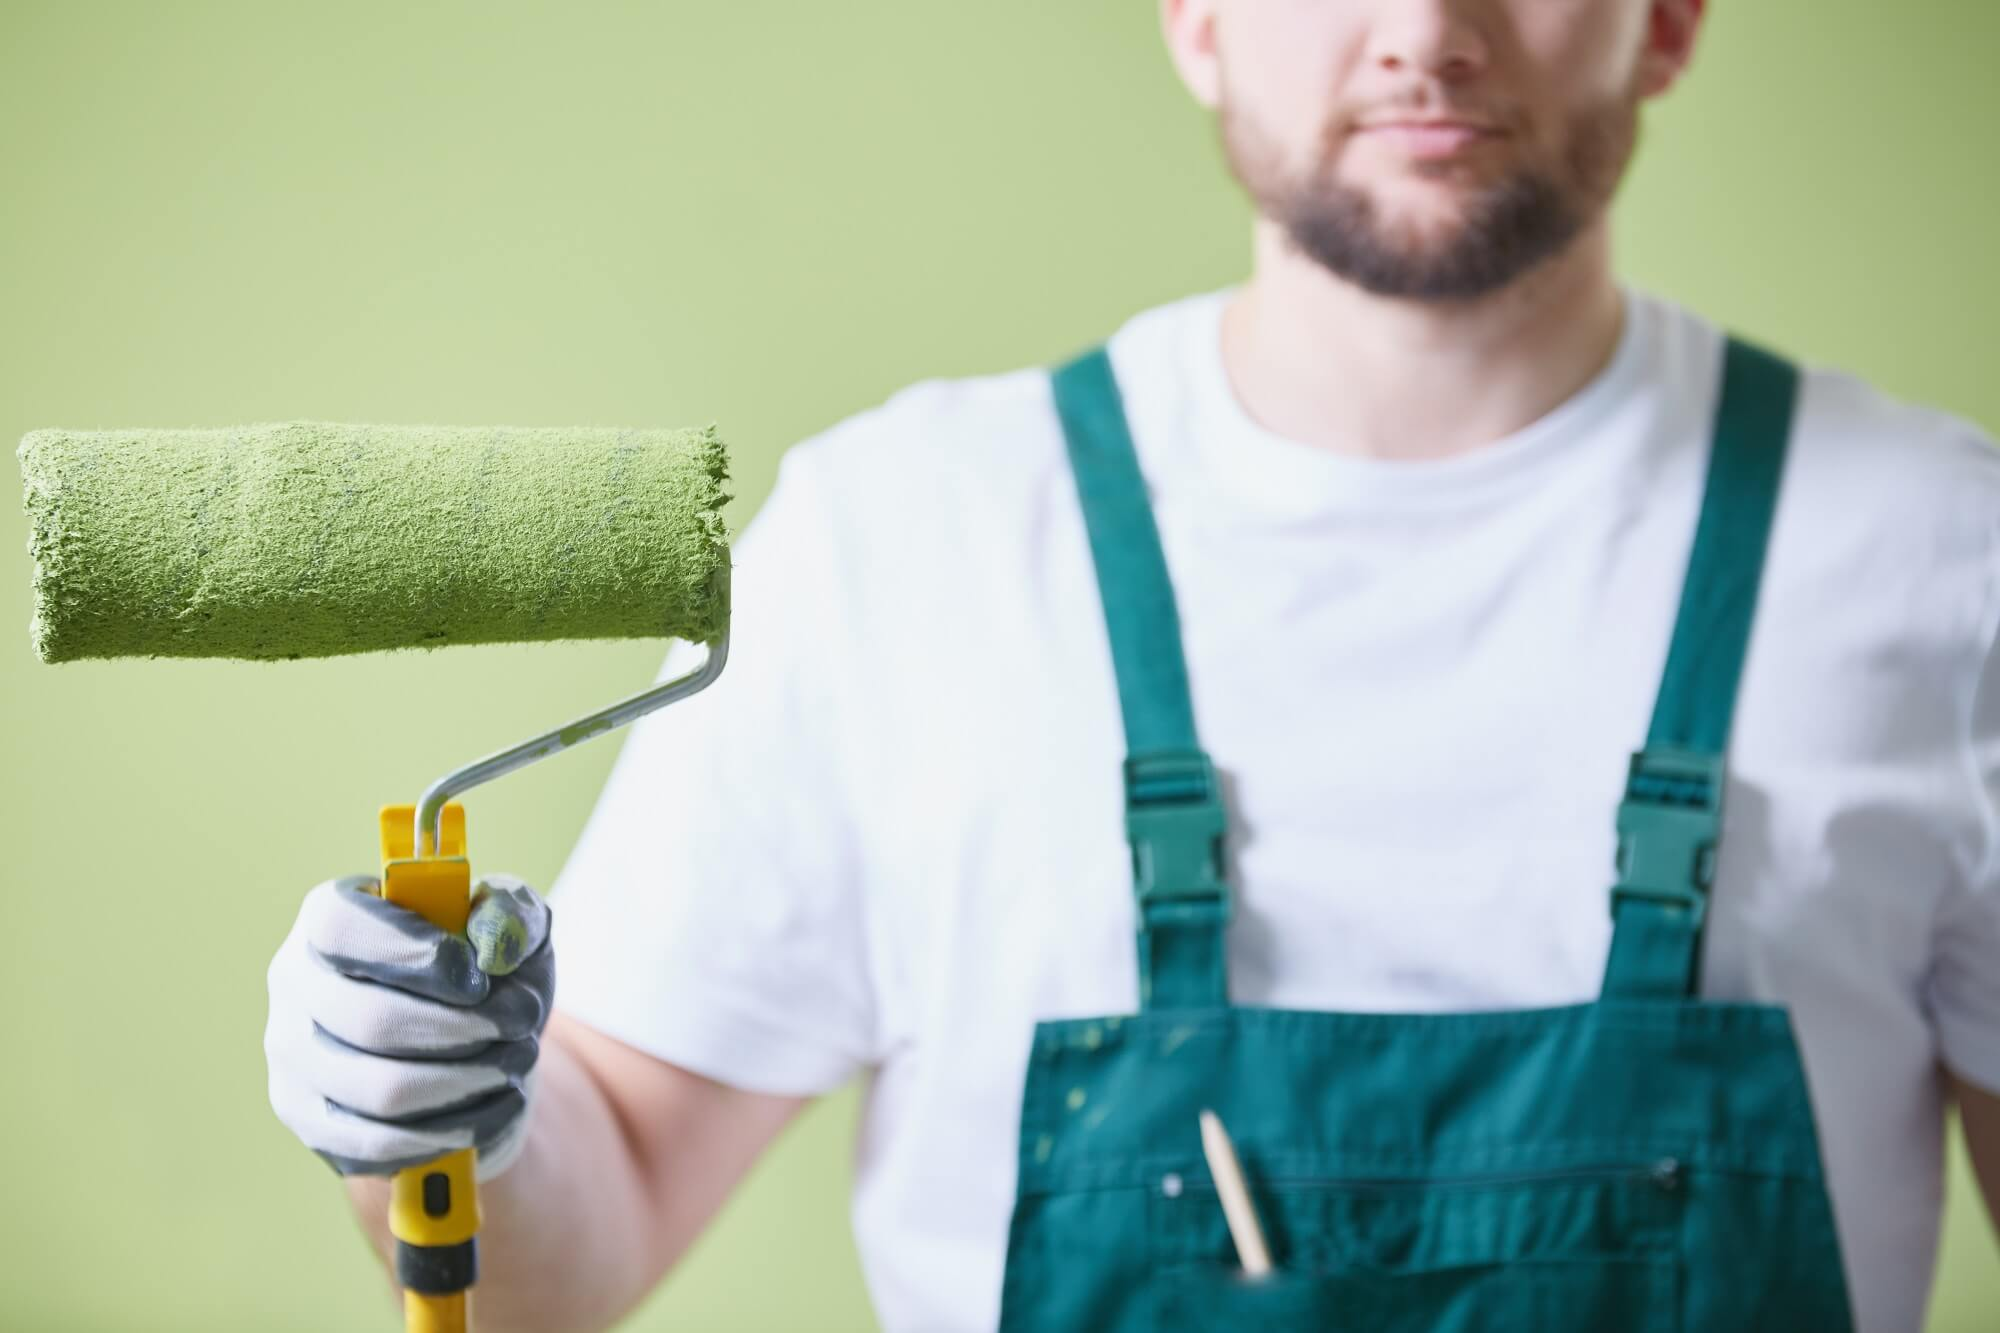 Man holding green paint roller prepared to paint the room